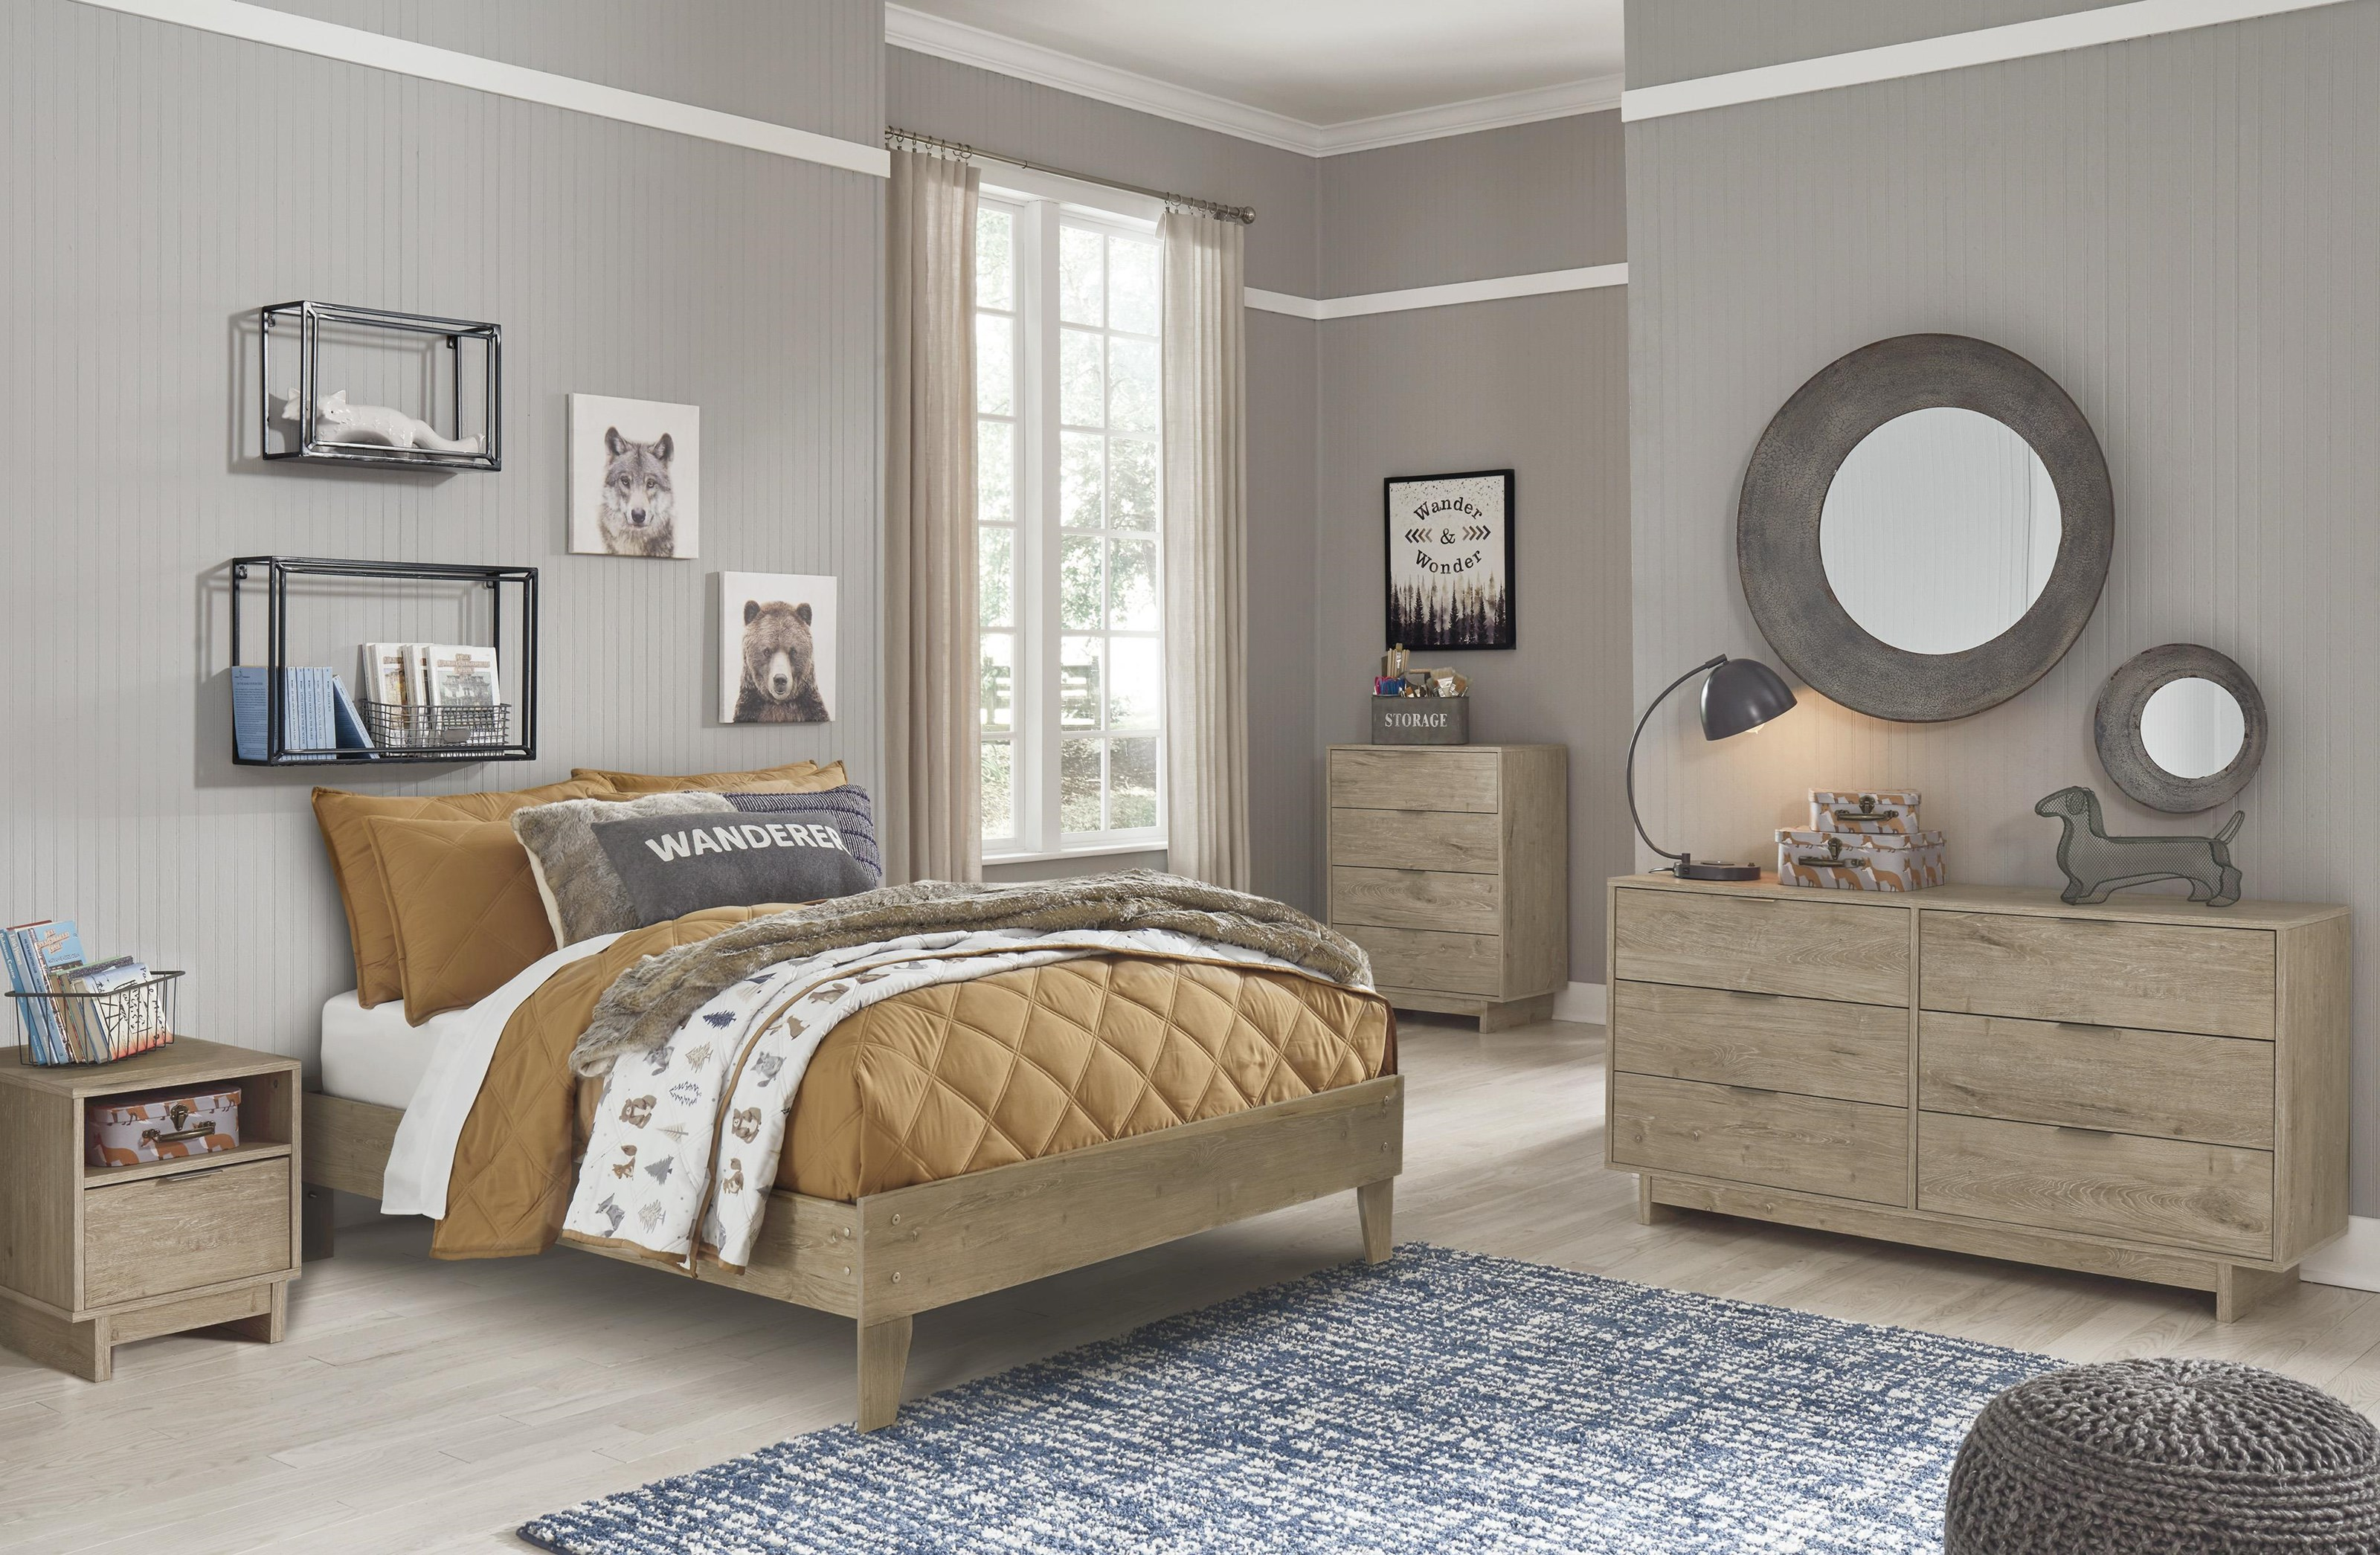 Oliah 3 Piece Queen Bedroom Set by Signature Design by Ashley at Sam Levitz Outlet